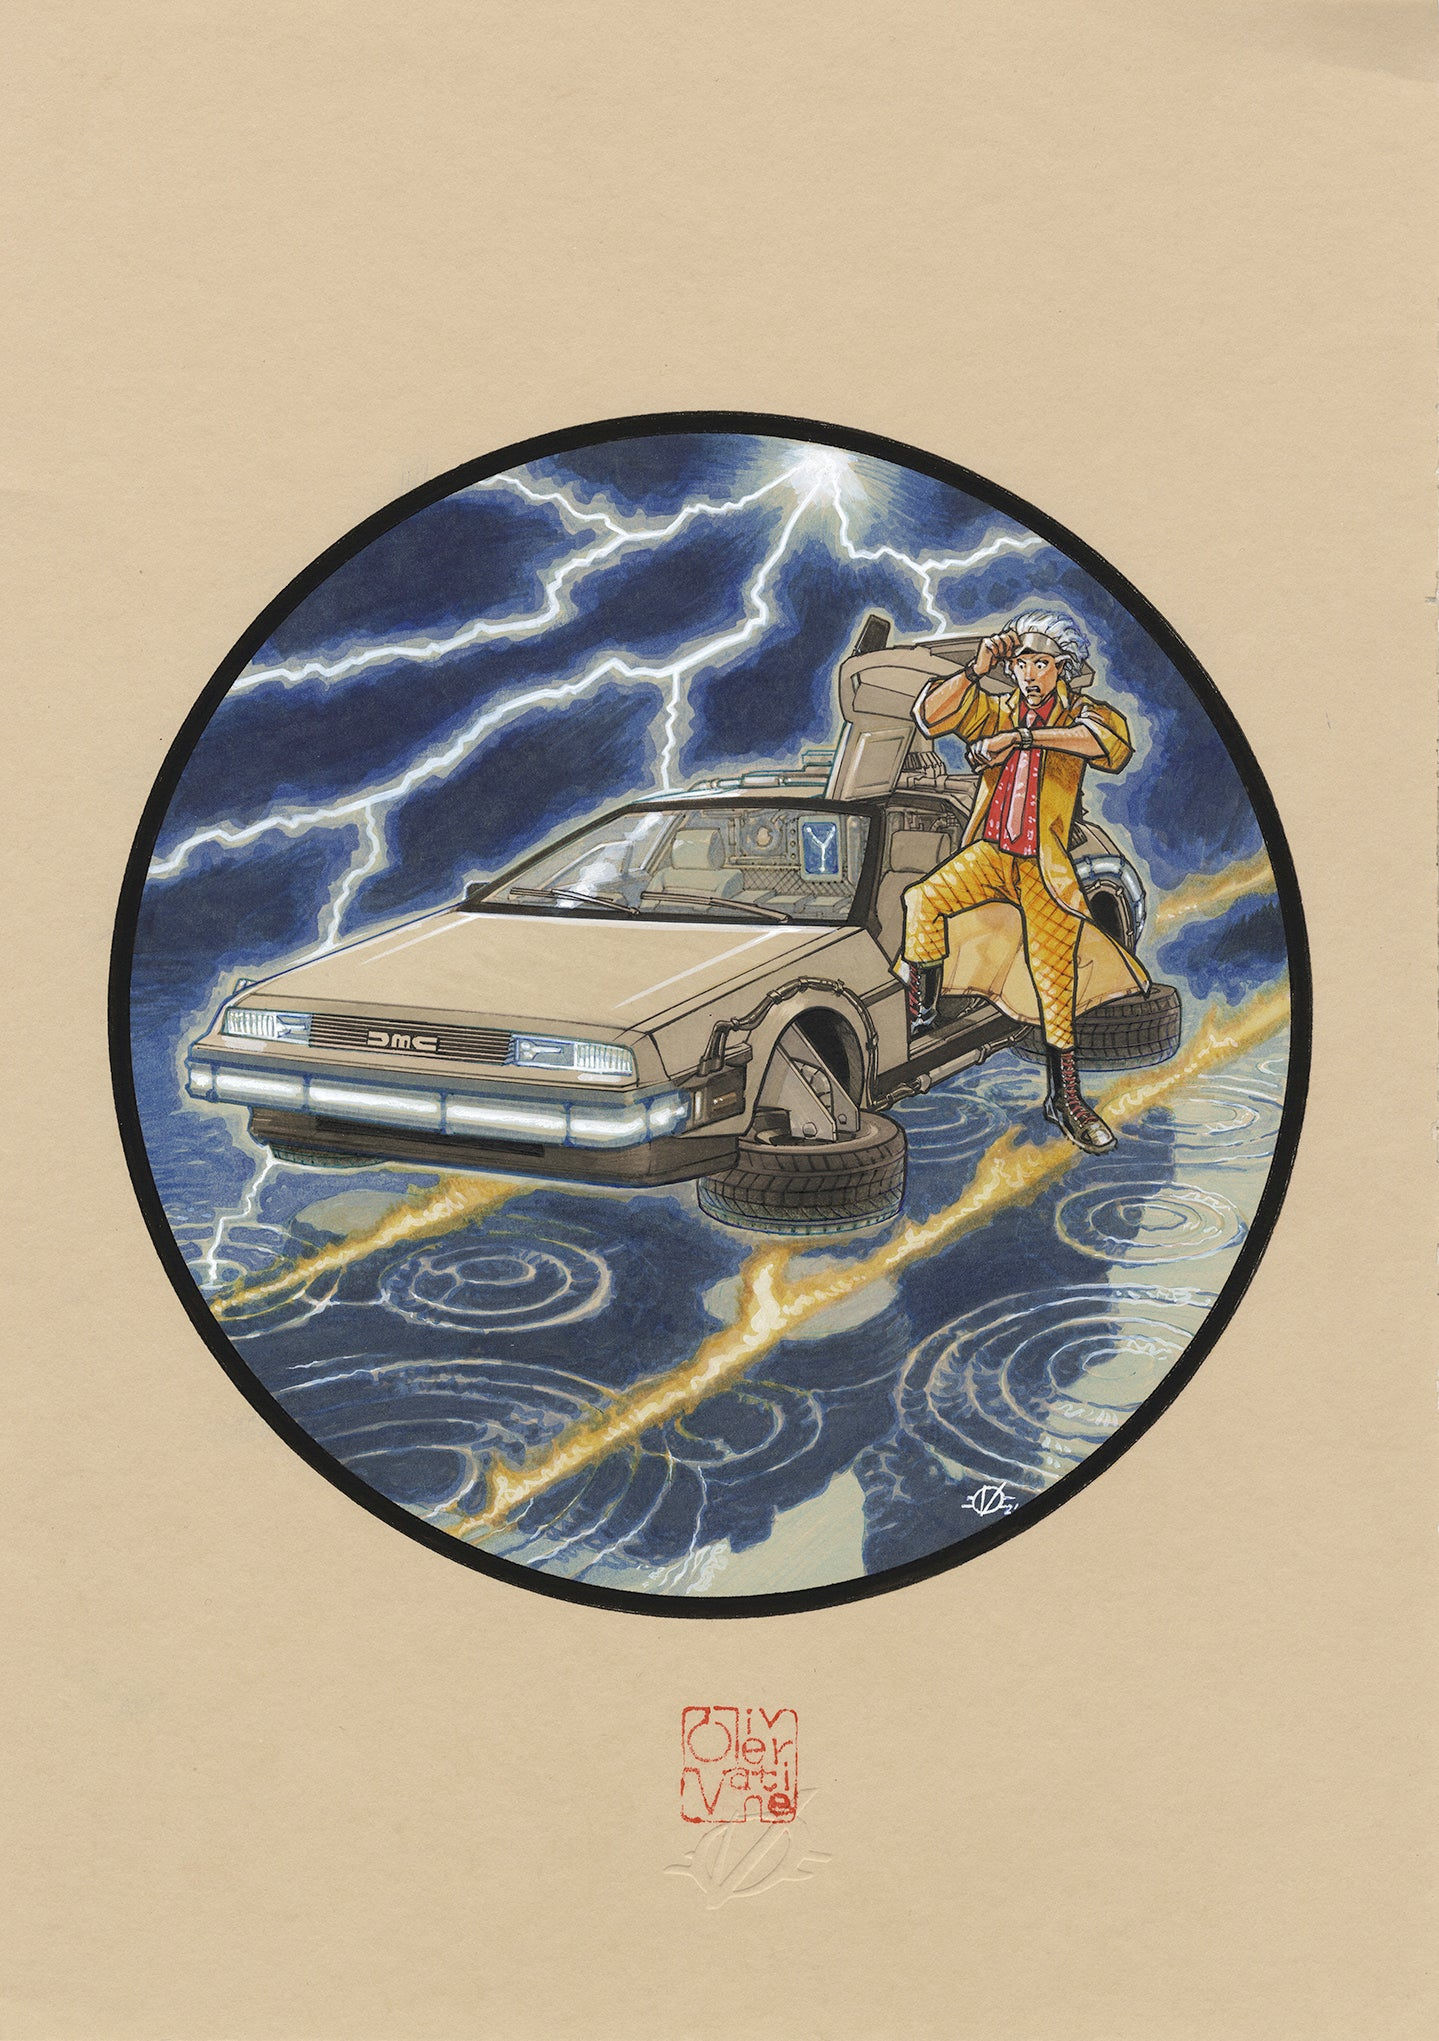 Olivier Vatine Original Art Back to the Future DMC DeLorean Cars Collection